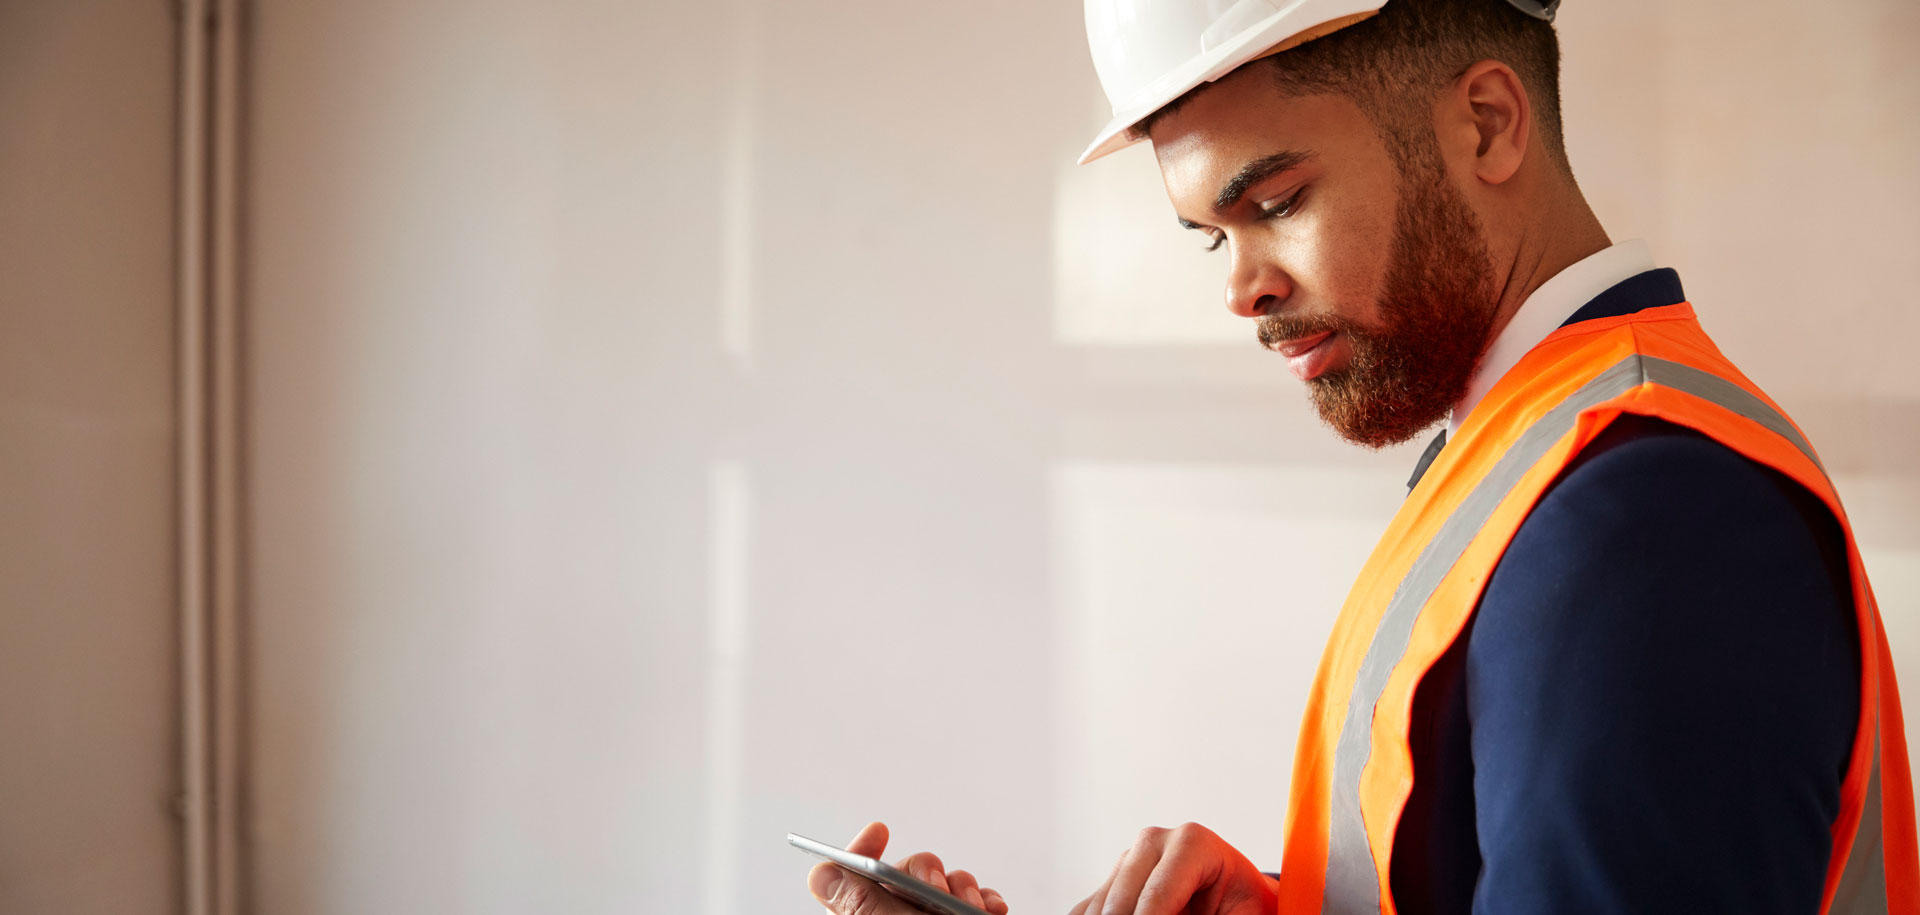 Man in bright orange jacket and hardhat looking at tablet